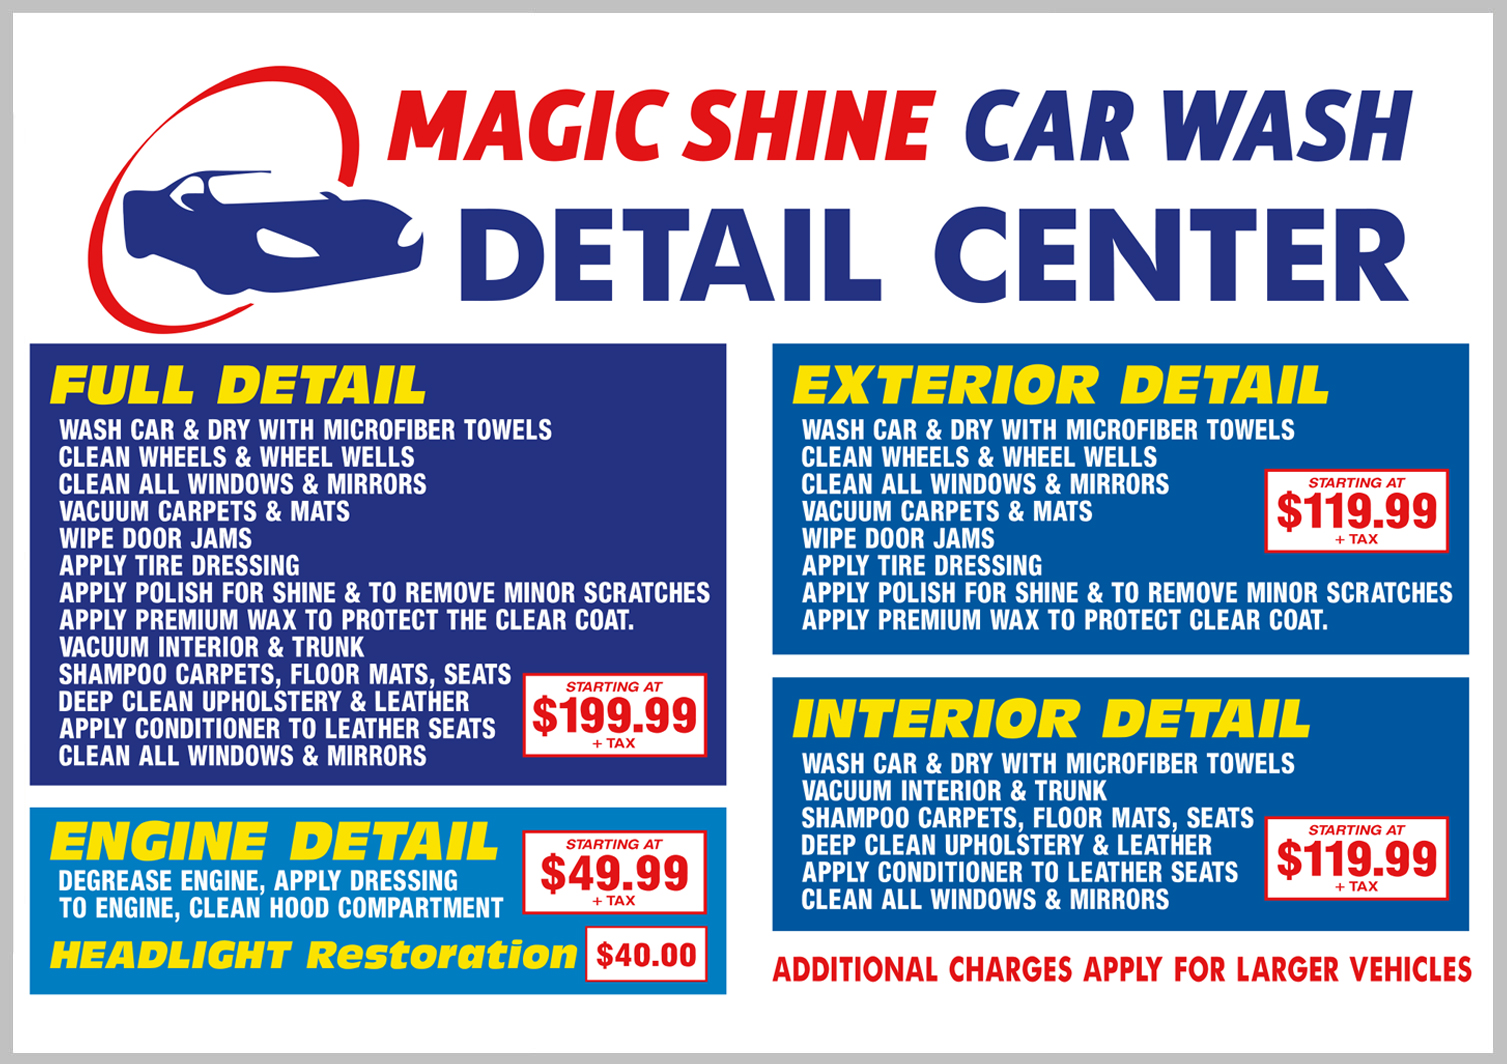 Car Detailing Prices >> Magic Shine Car Wash Detail Center